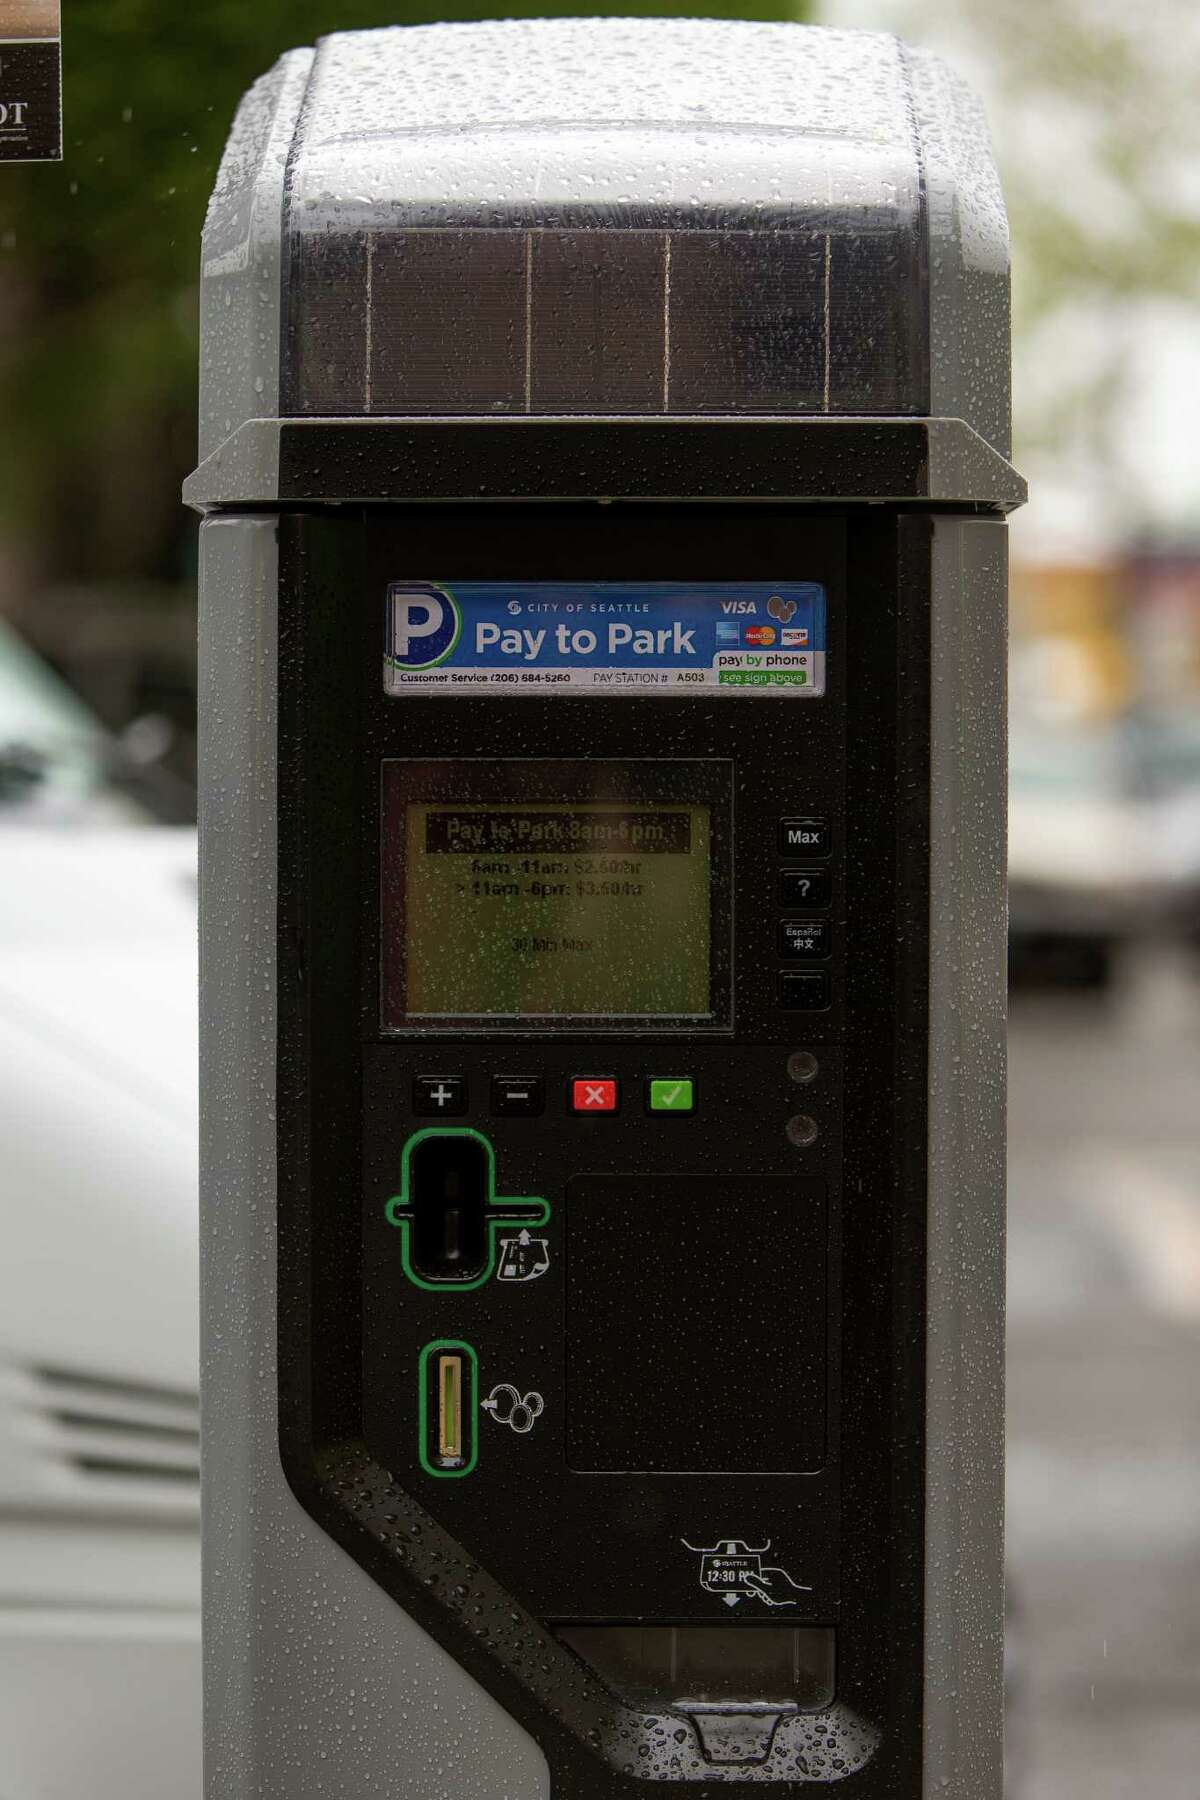 SDOT employees show off one of 2,200 new smart parking pay stations Monday, April 13, 2015, near CenturyLink Field in Seattle, Washington. The City of Seattle selected the IPS Group to replace or retrofit all of the city?•s on-street parking pay stations by the end of 2016, boasting a higher level of customer service, communications reliability and variable